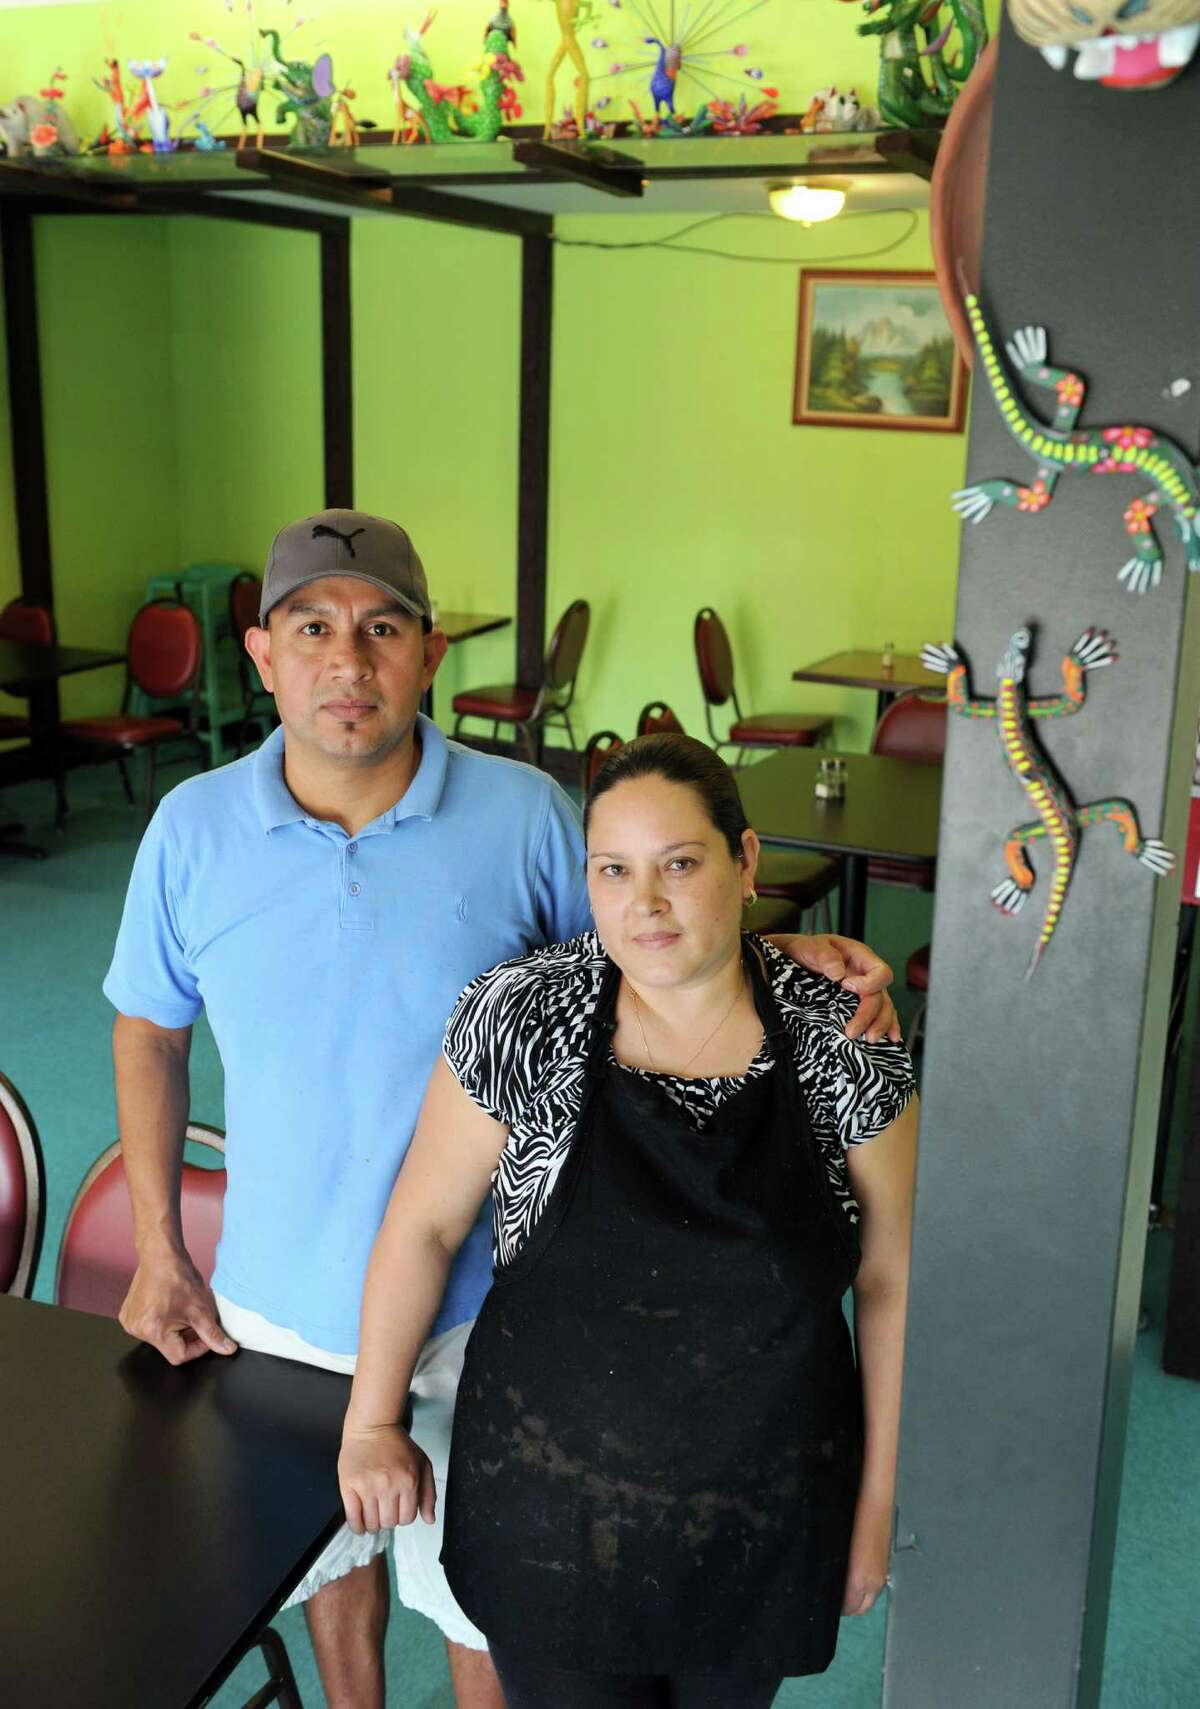 Everardo Sosa-Mendoza and his wife, Maria Sosa owners of La Mexicana restaurant and grocery store on Tuesday Oct. 1, 2013 in Schenectady, N.Y. (Michael P. Farrell/Times Union)